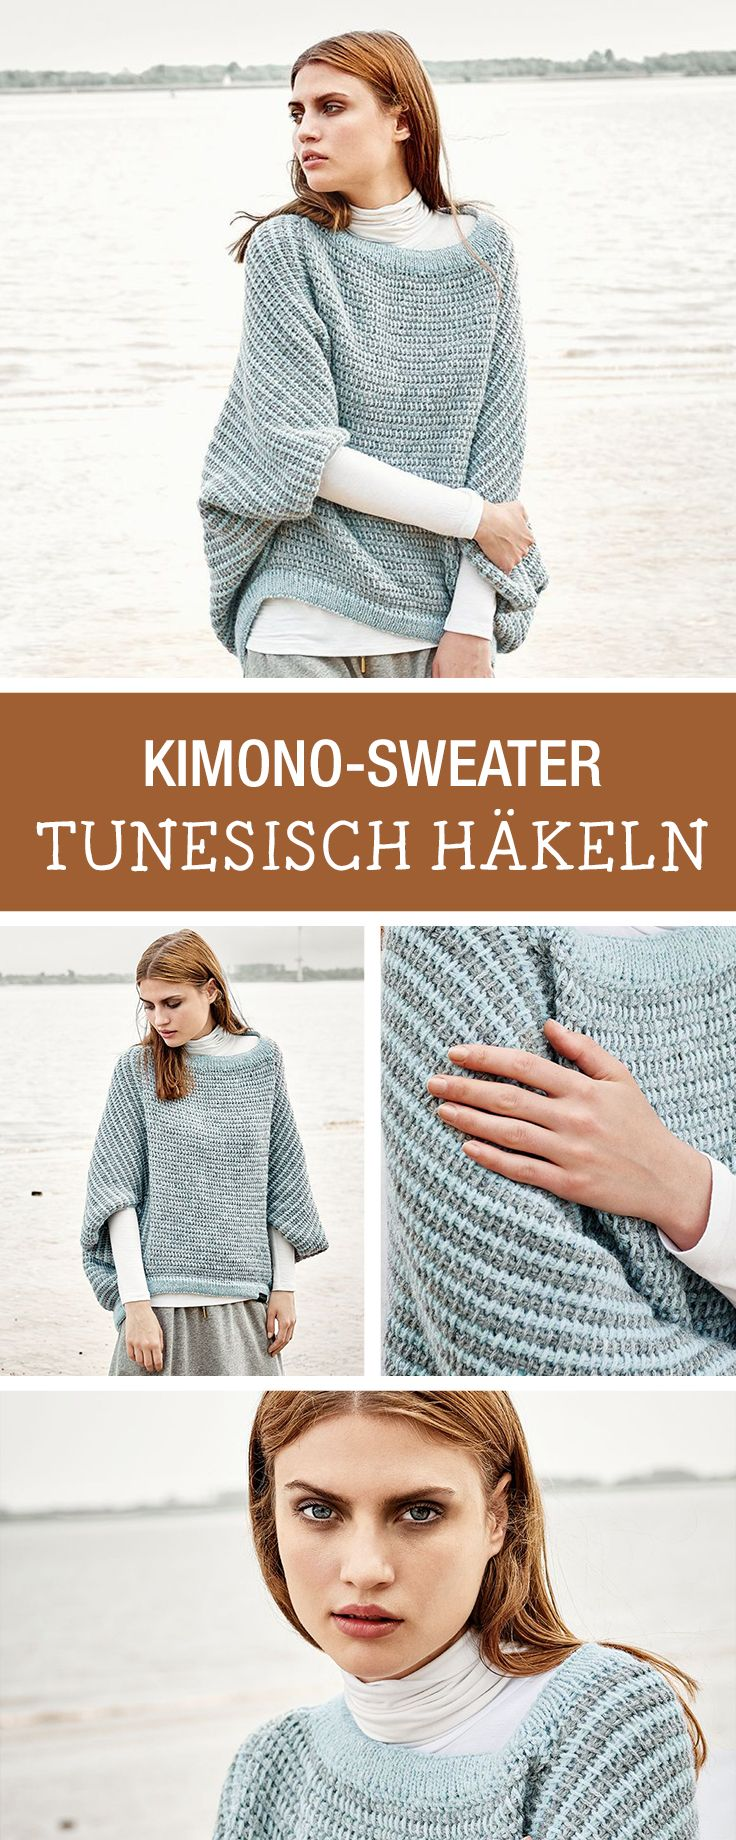 DIY-Anleitung: Diesen Herbst häkelst Du tunesisch, stelle ein Kimono-Sweater selbst her, Wintermode / DIY tutorial: this fall you'll do tunesian crocheting, winter fashion via DaWanda.com